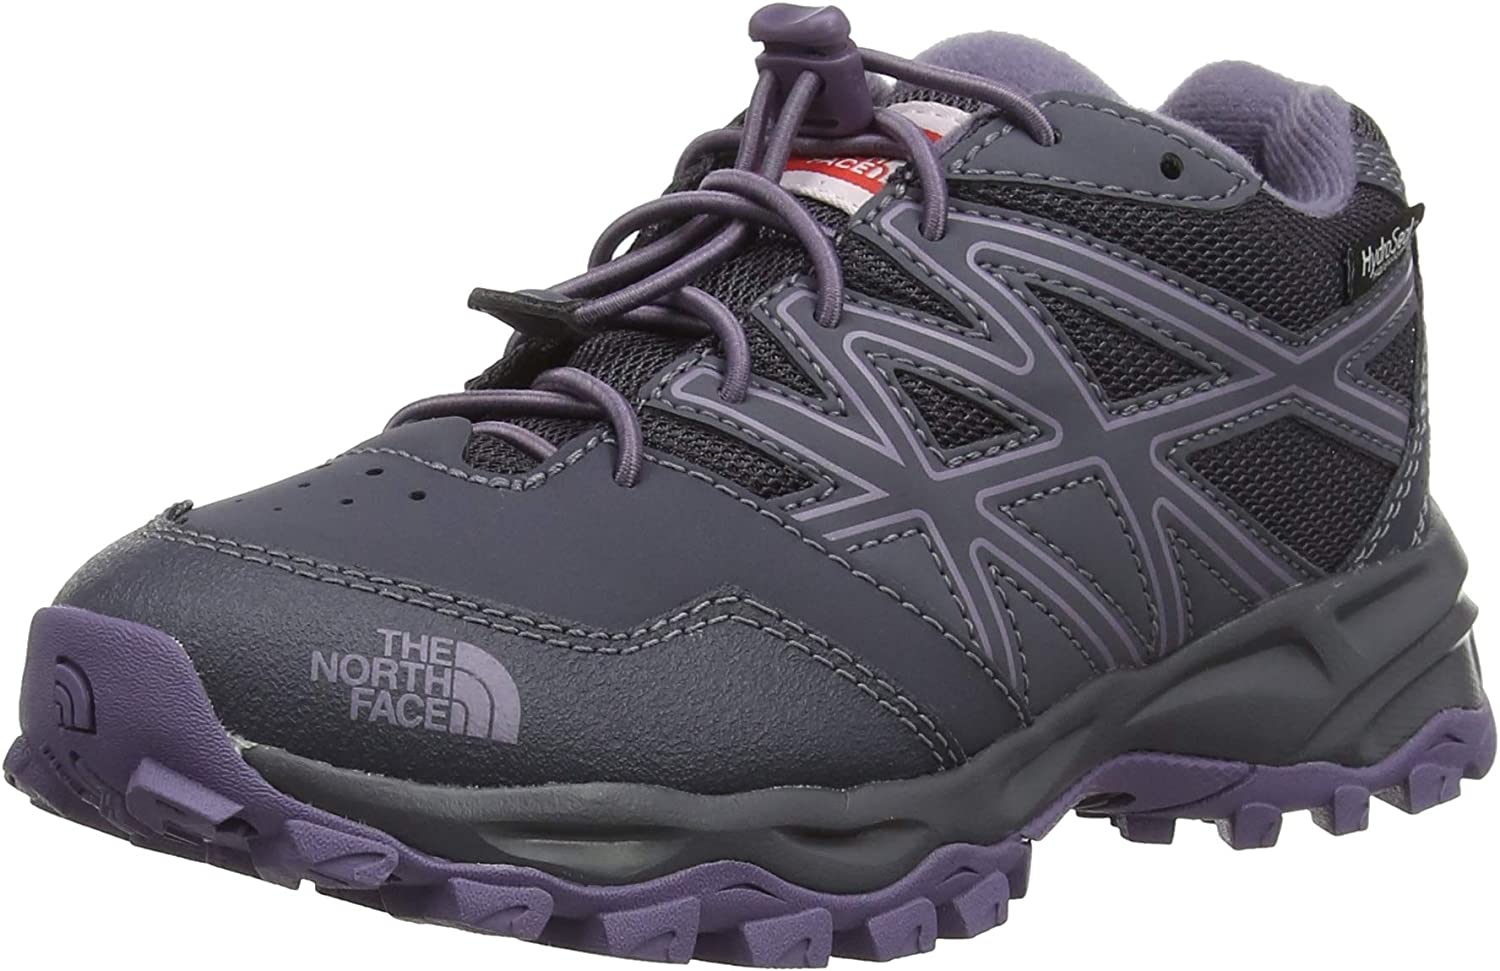 The North Face Hedgehog Hiker Waterproof, Zapatillas de Senderismo Unisex Niños, Gris (Periscope Grey/Purple Sage 5ss), 35 EU: Amazon.es: Zapatos y complementos